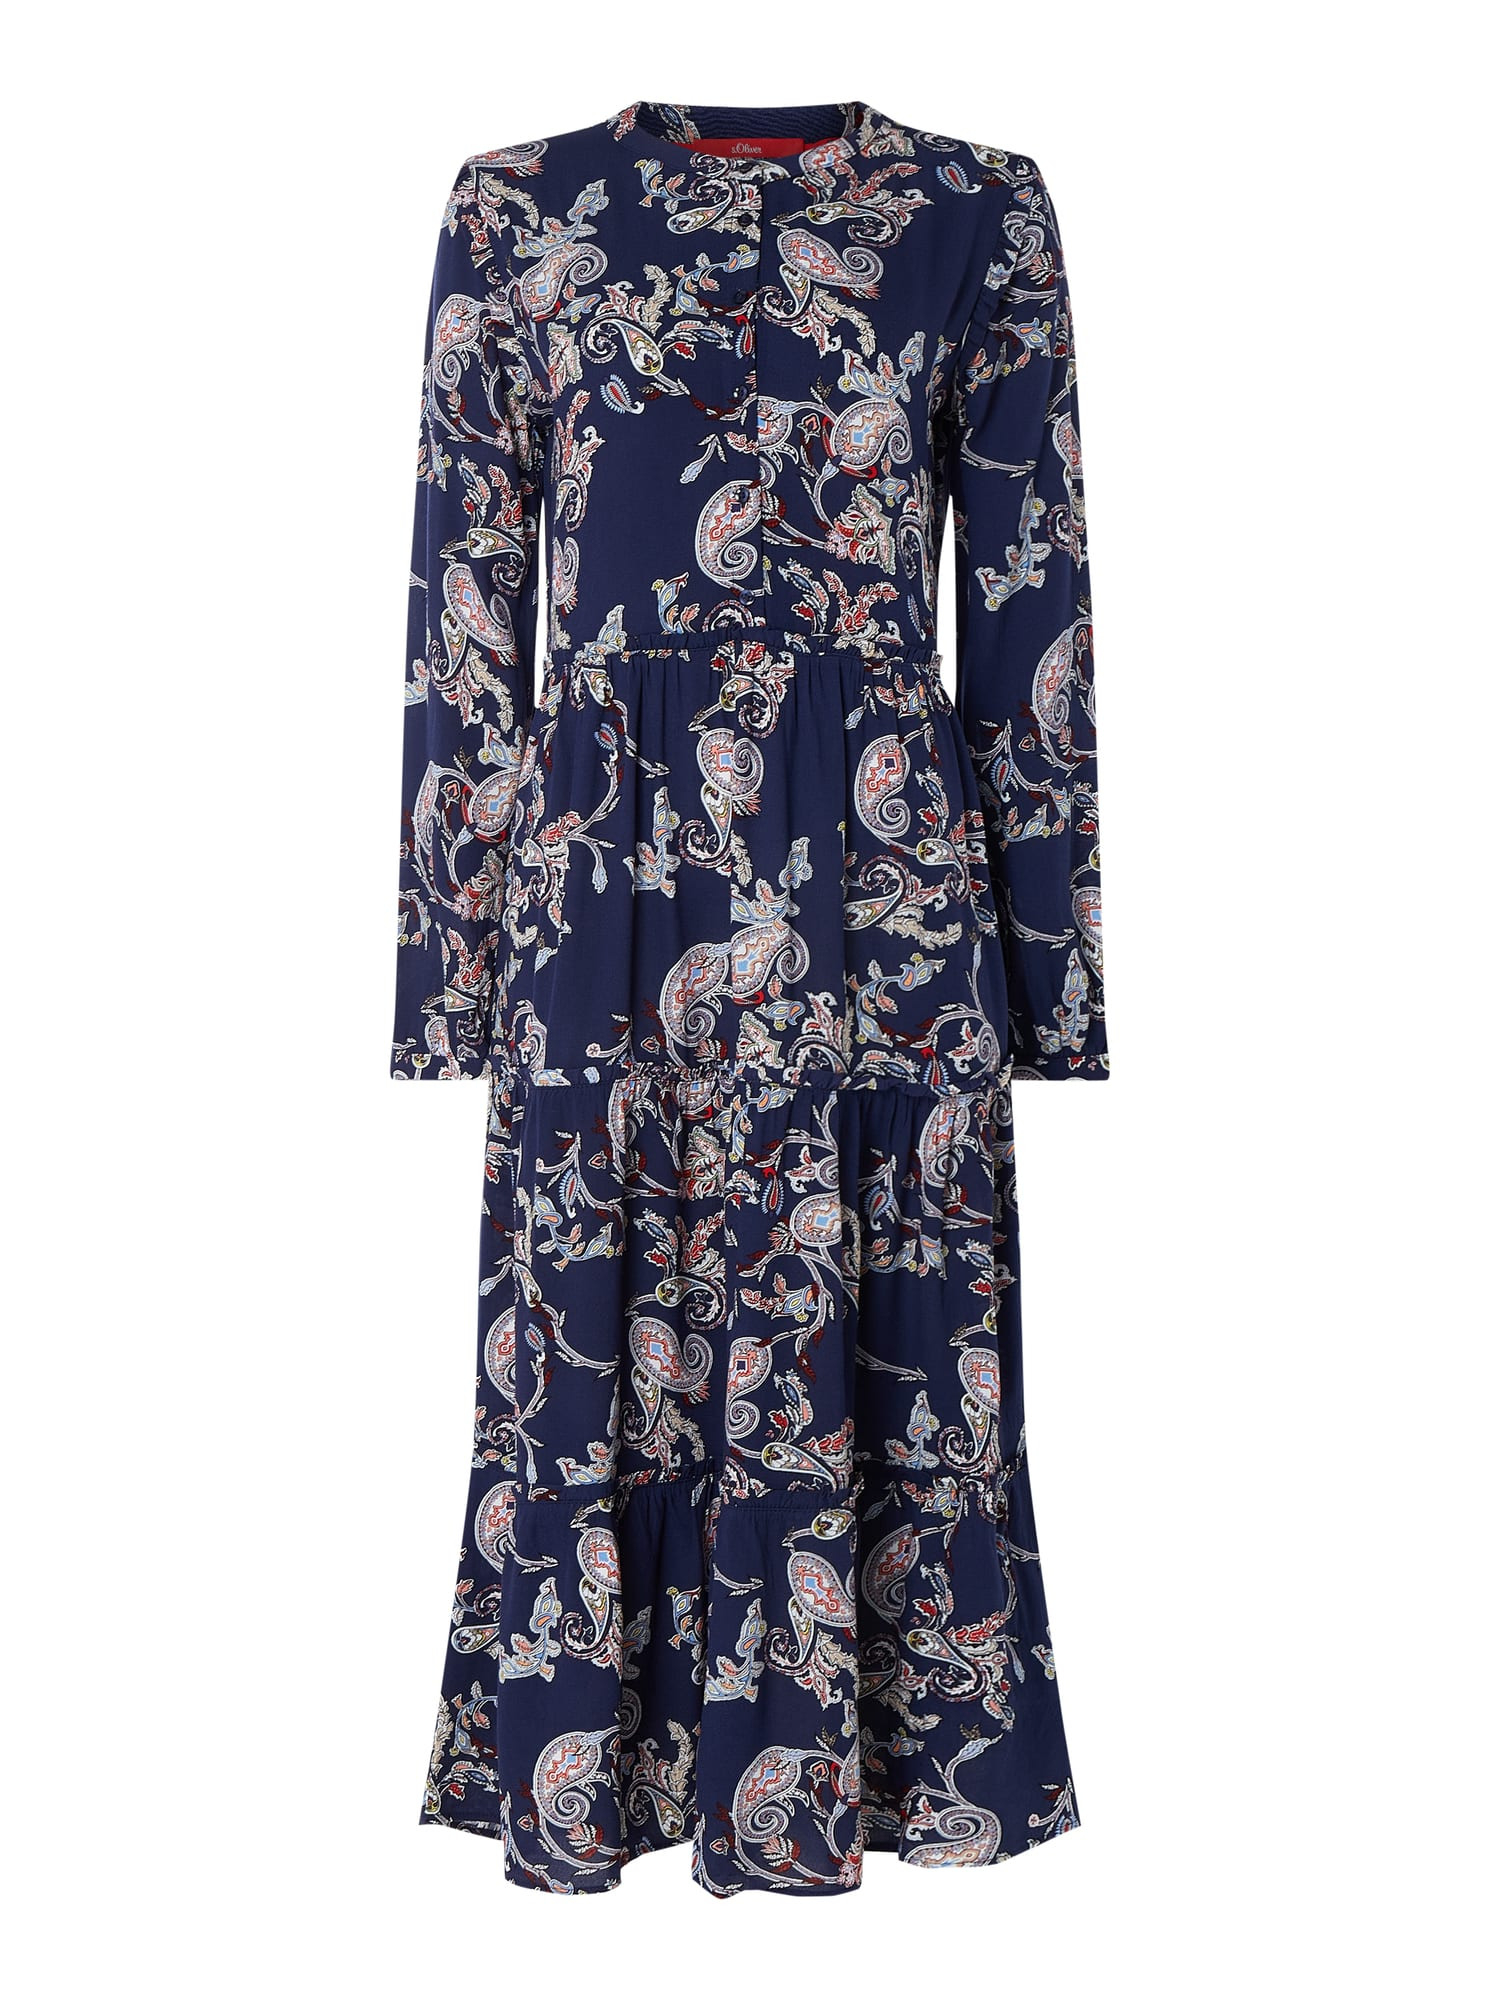 Soliver Red Label Maxikleid Mit Paisleymuster In Blau